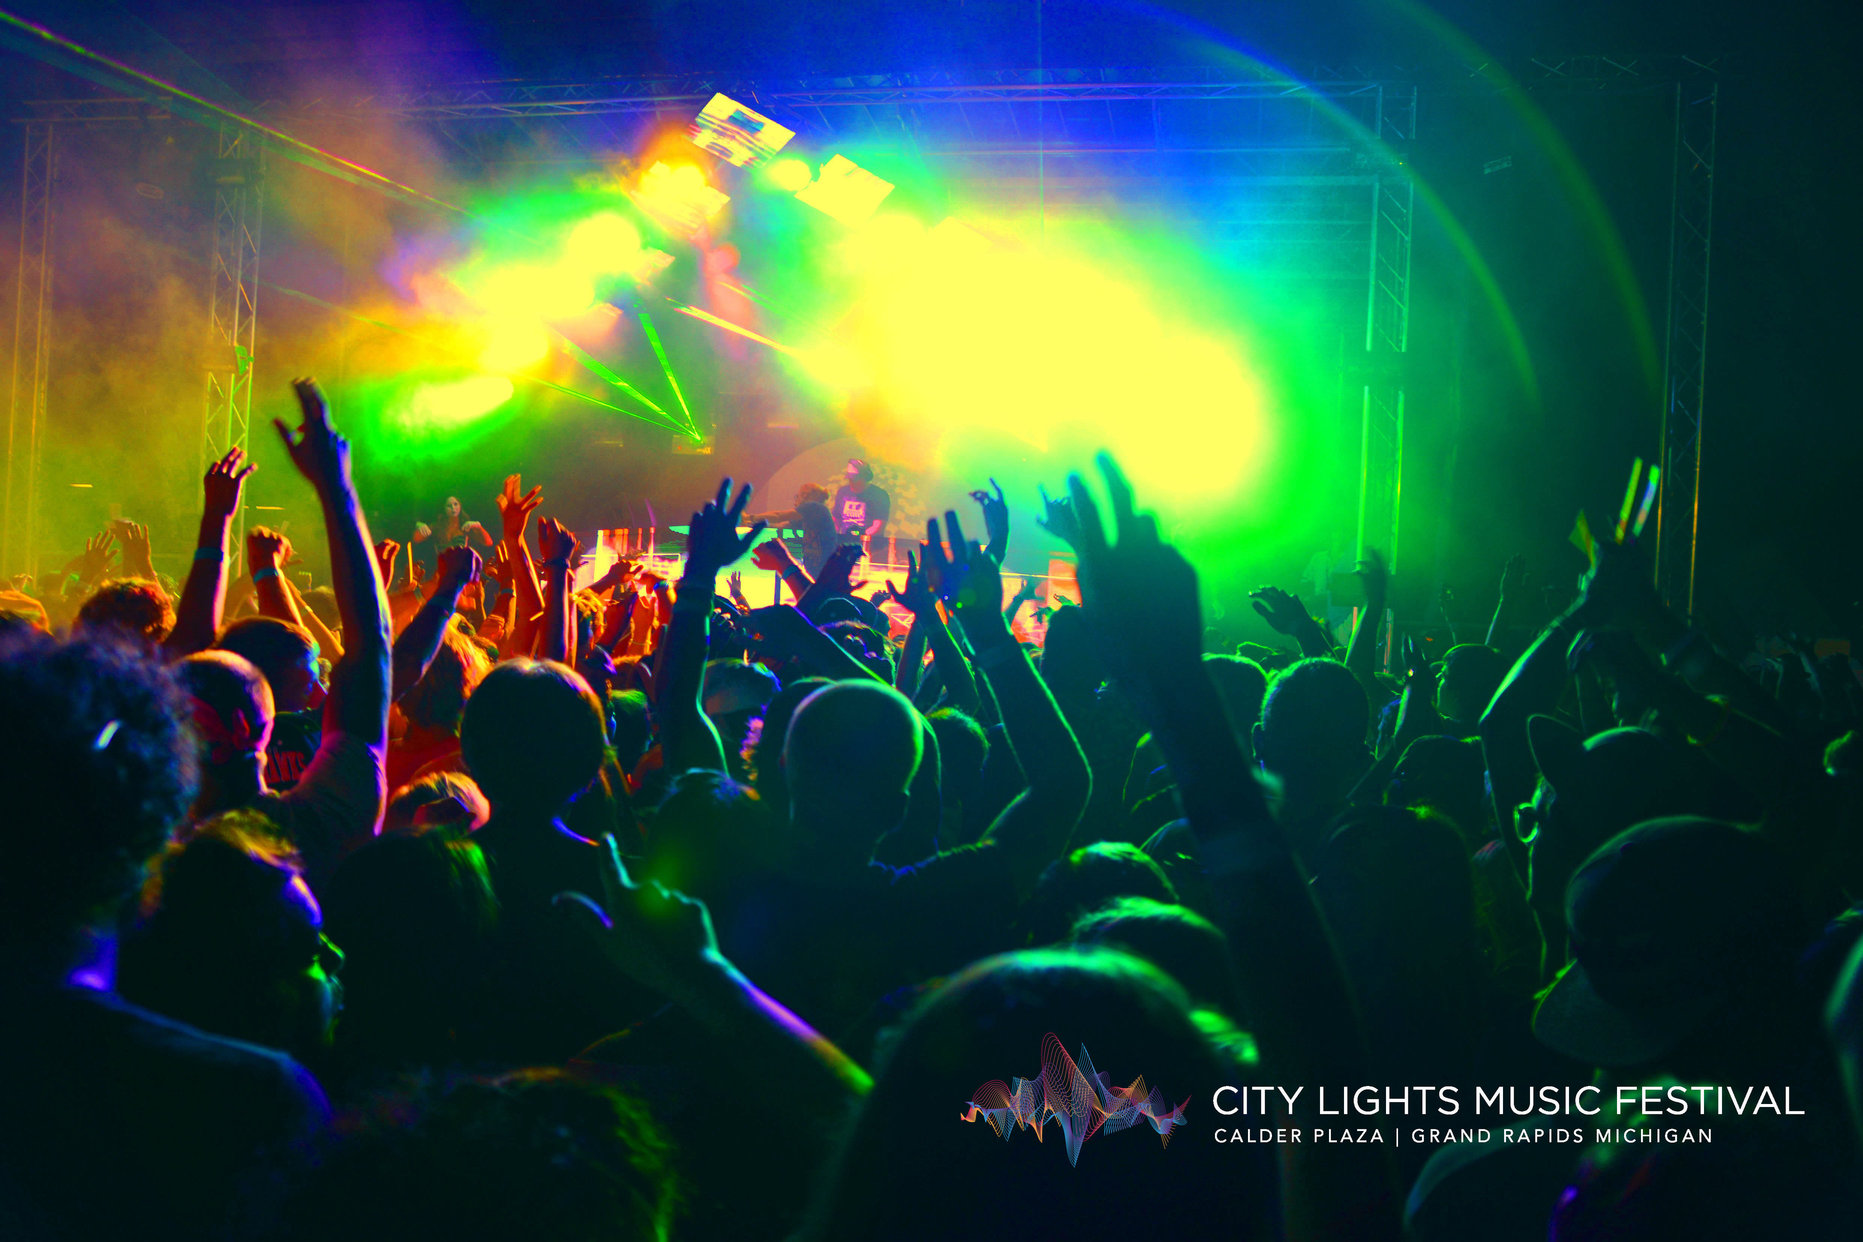 Tickets for City Lights Music Festival 2013 in Grand Rapids from Social Productions, LLC